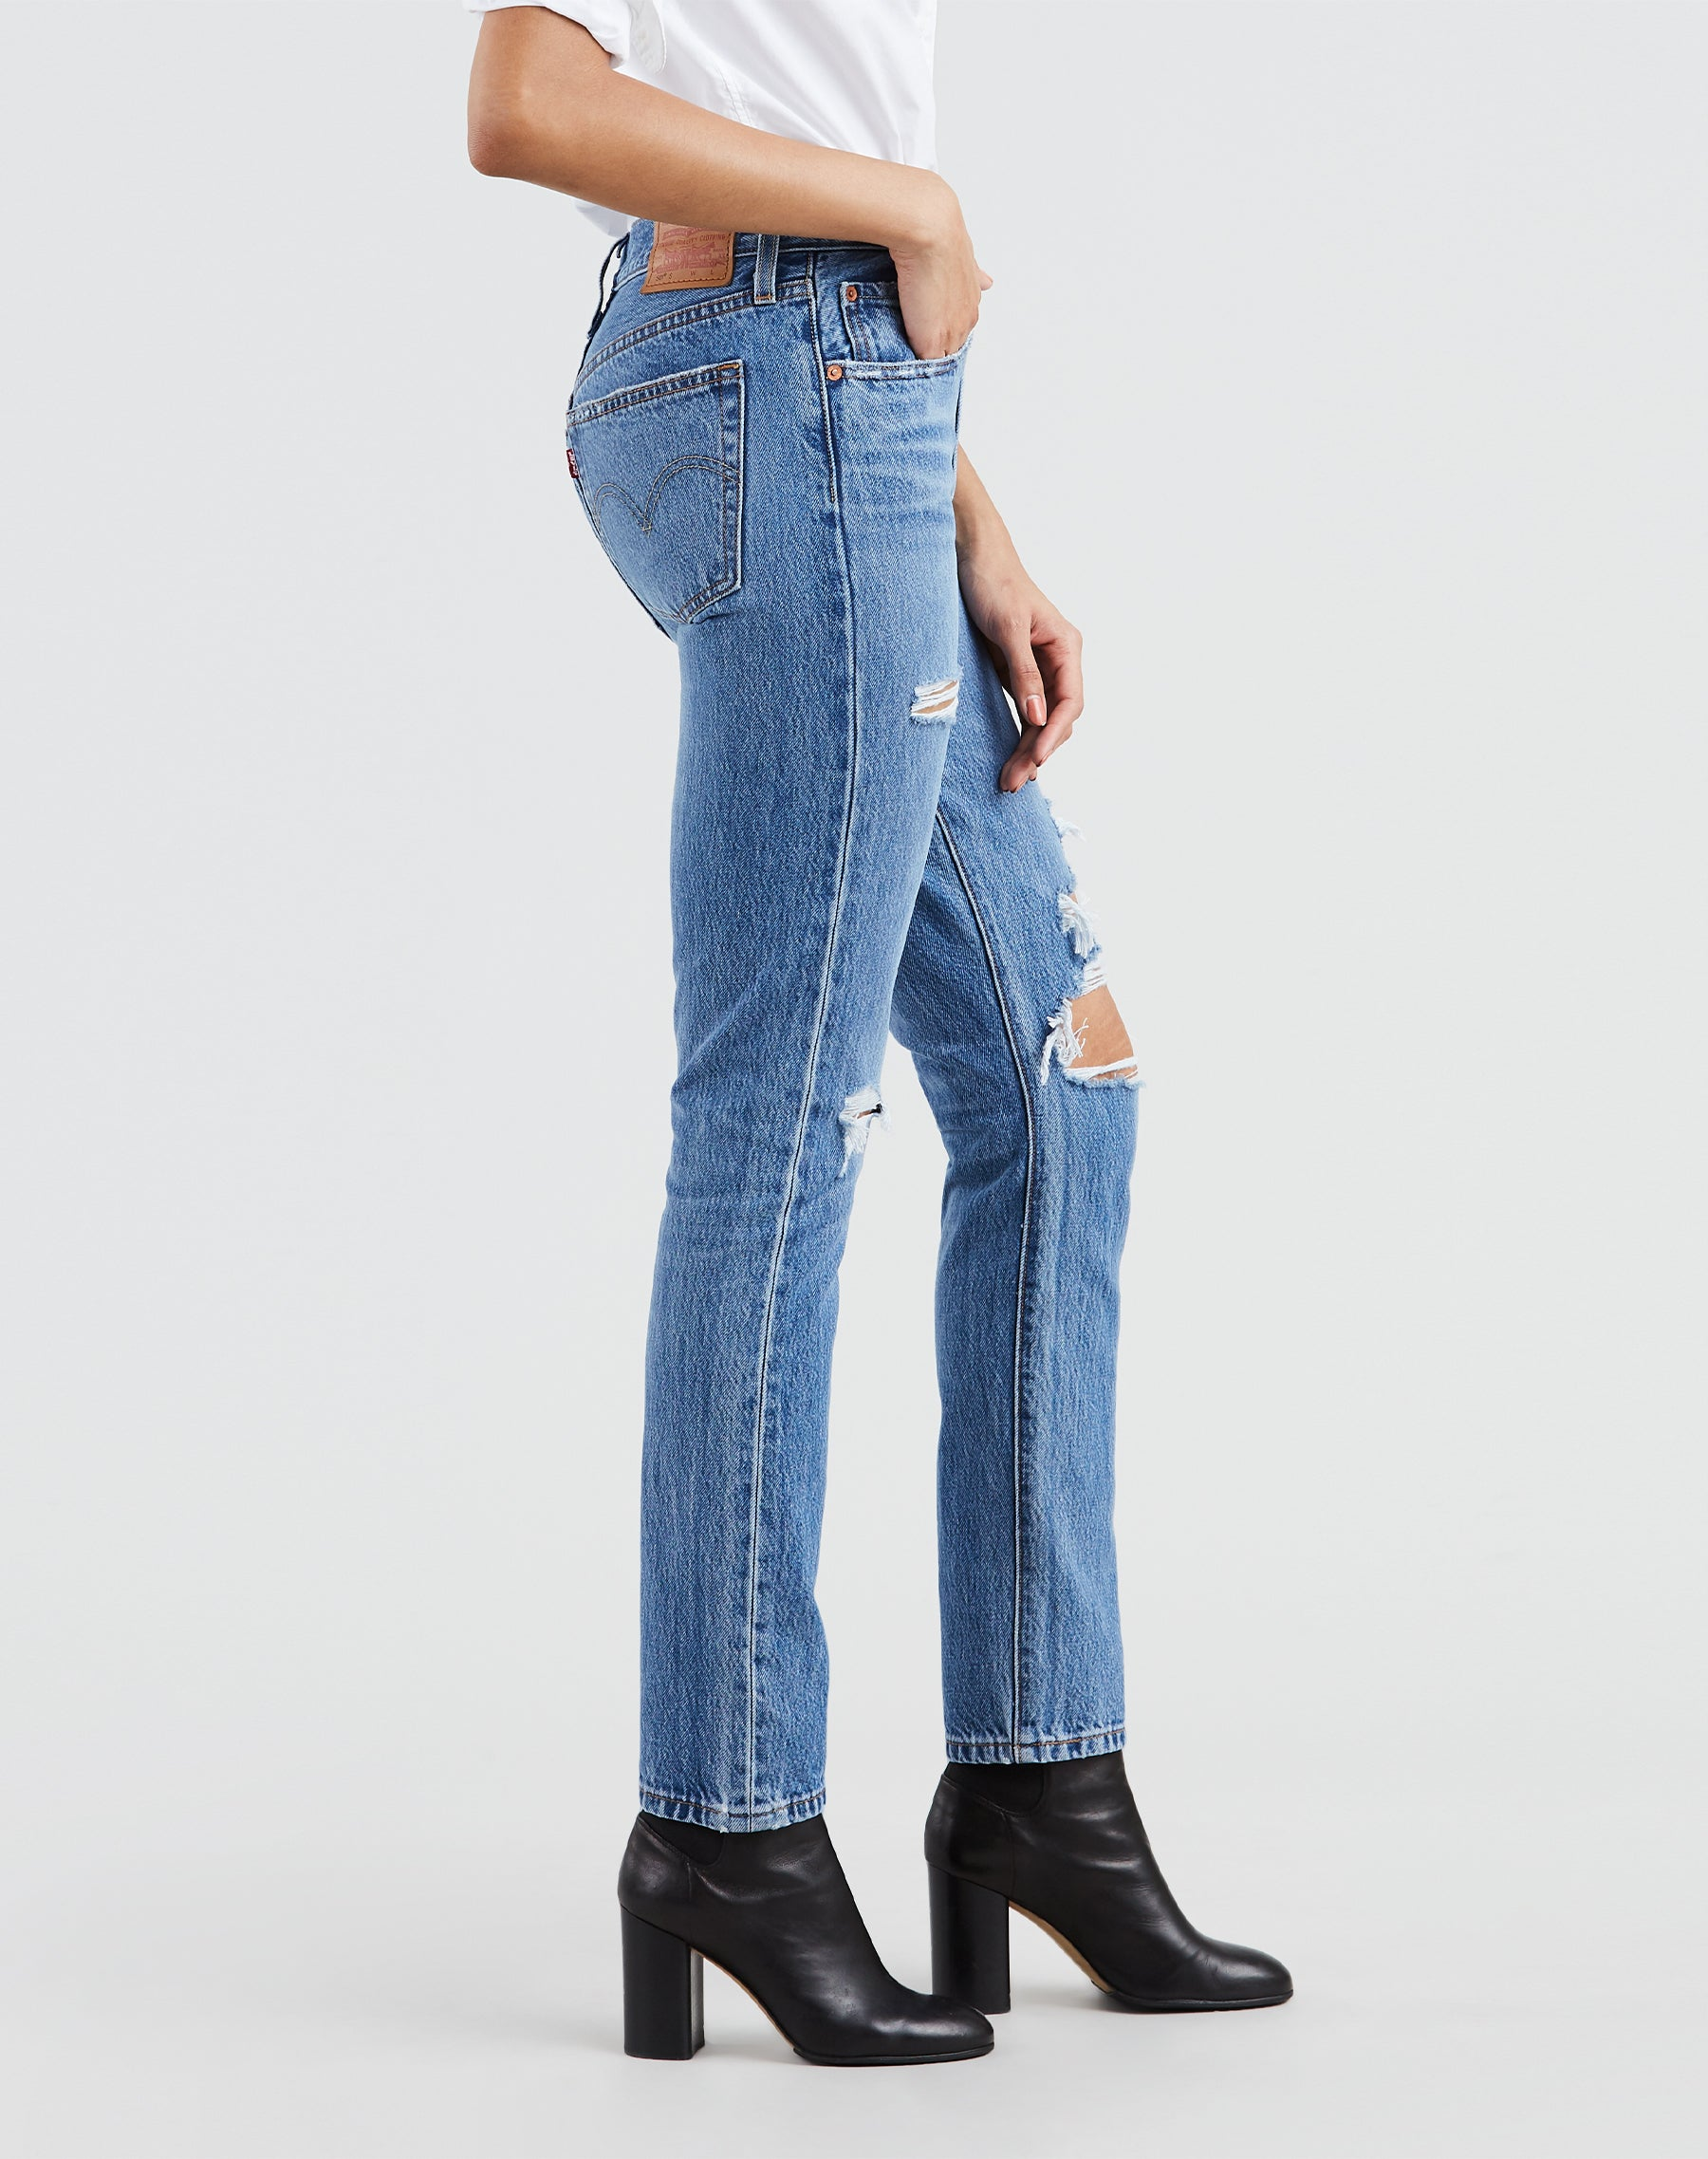 Photo of the side of Nice as Pie jeans with distressed detailing by Levi's.